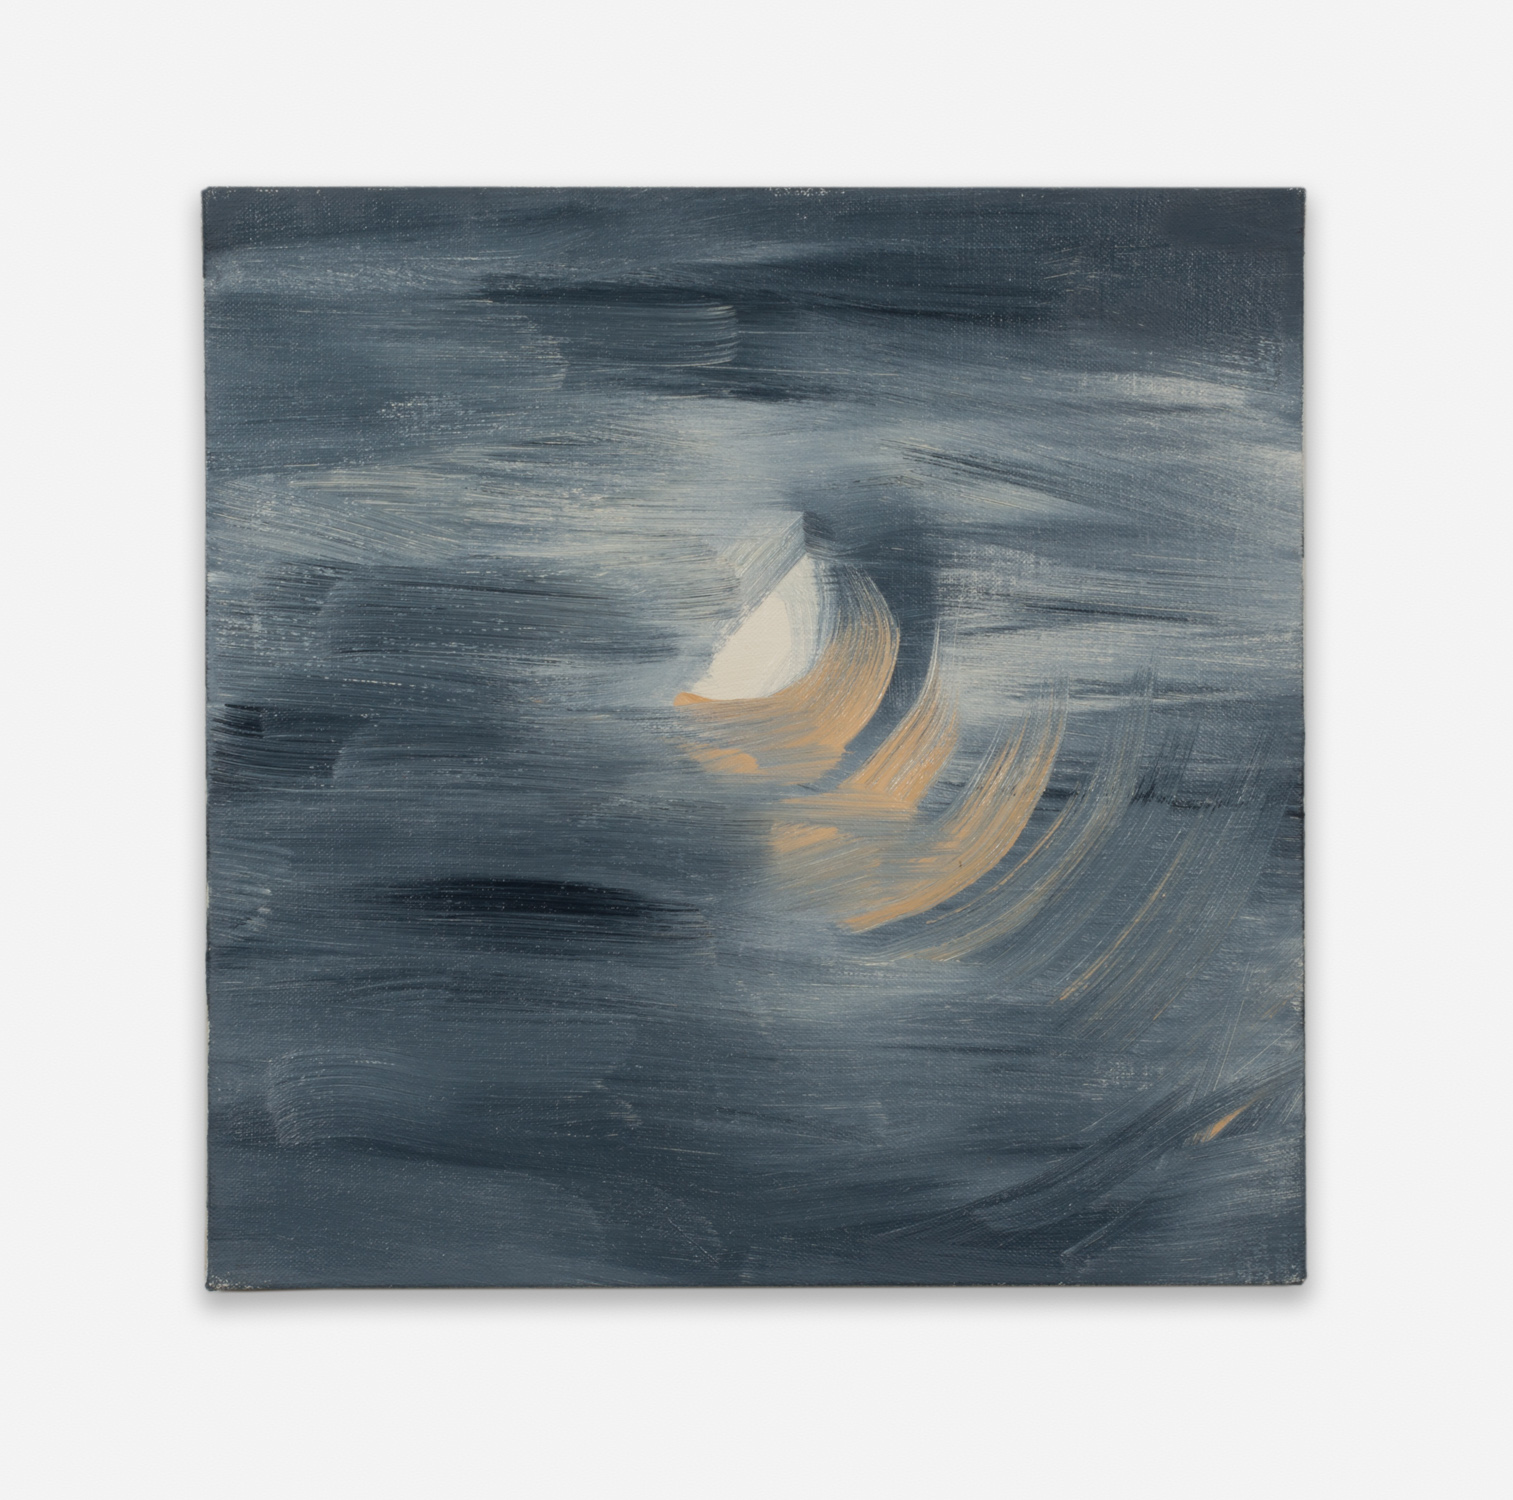 Ann Craven  Moon (Guilford, 8-25-12, 10:30PM), 2012  2012 Oil on linen 14h x 14w in AC129